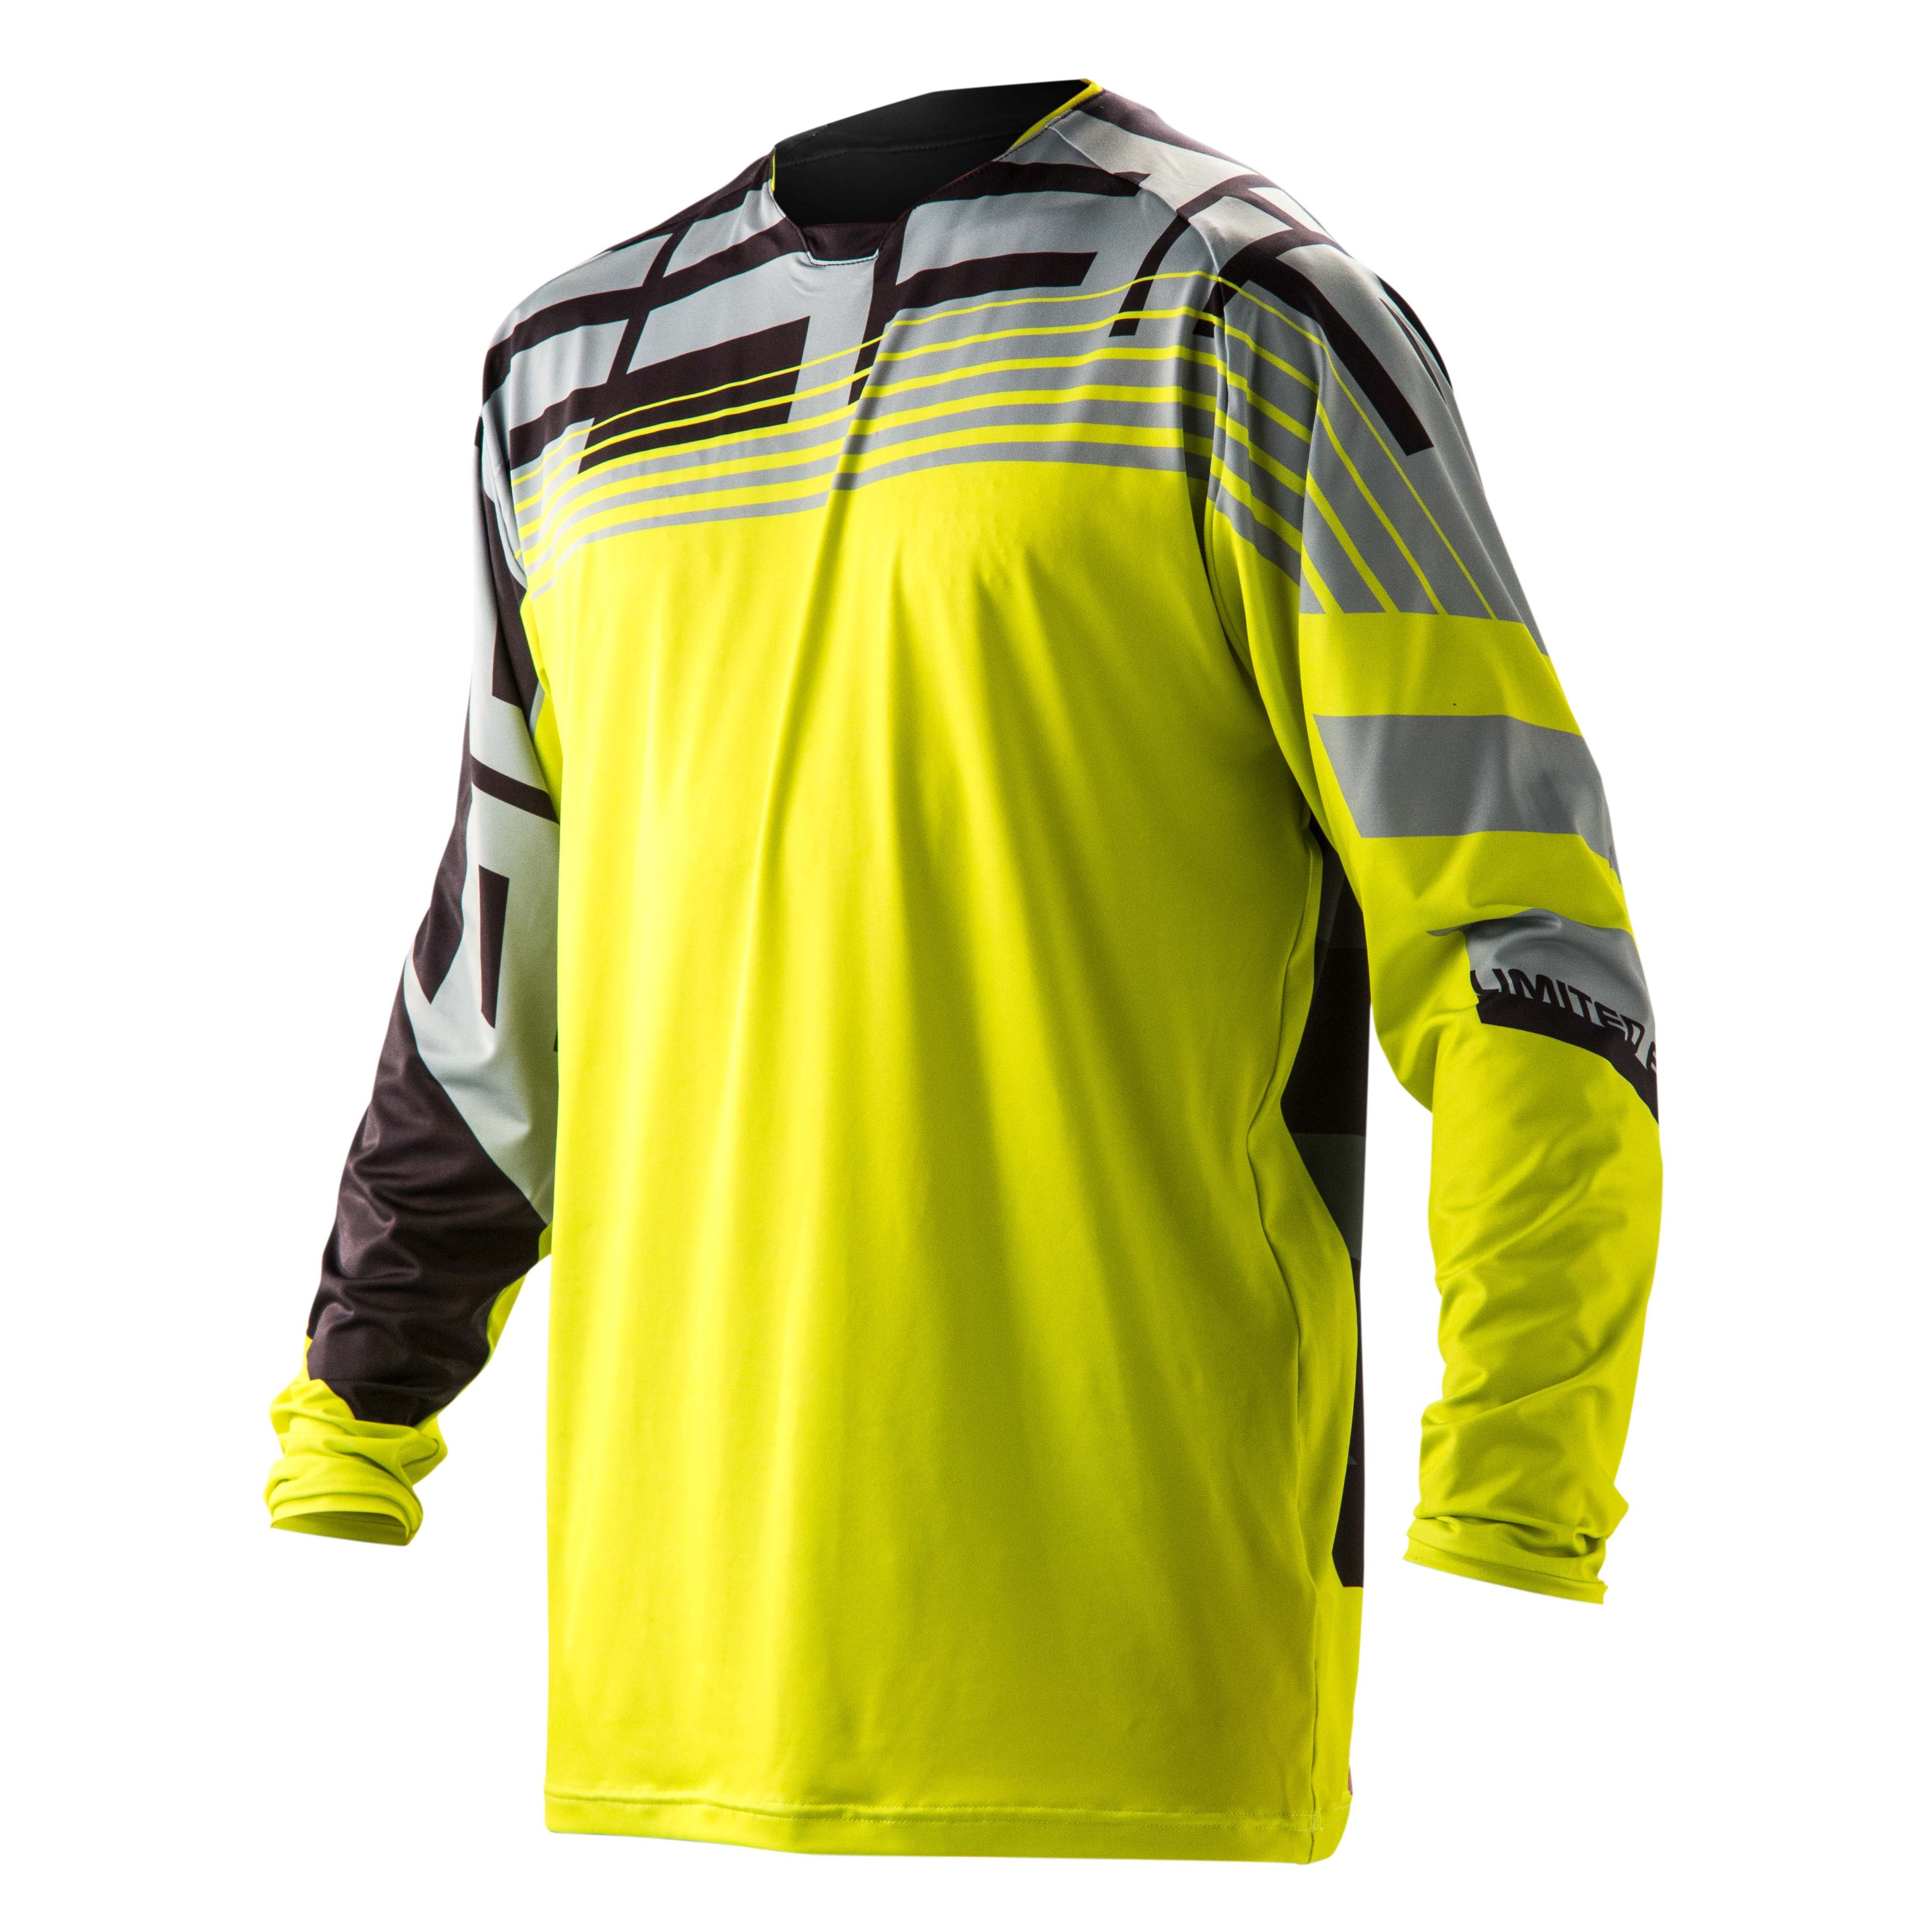 Maillot Cross Acerbis Flashover - Edition Limitee -